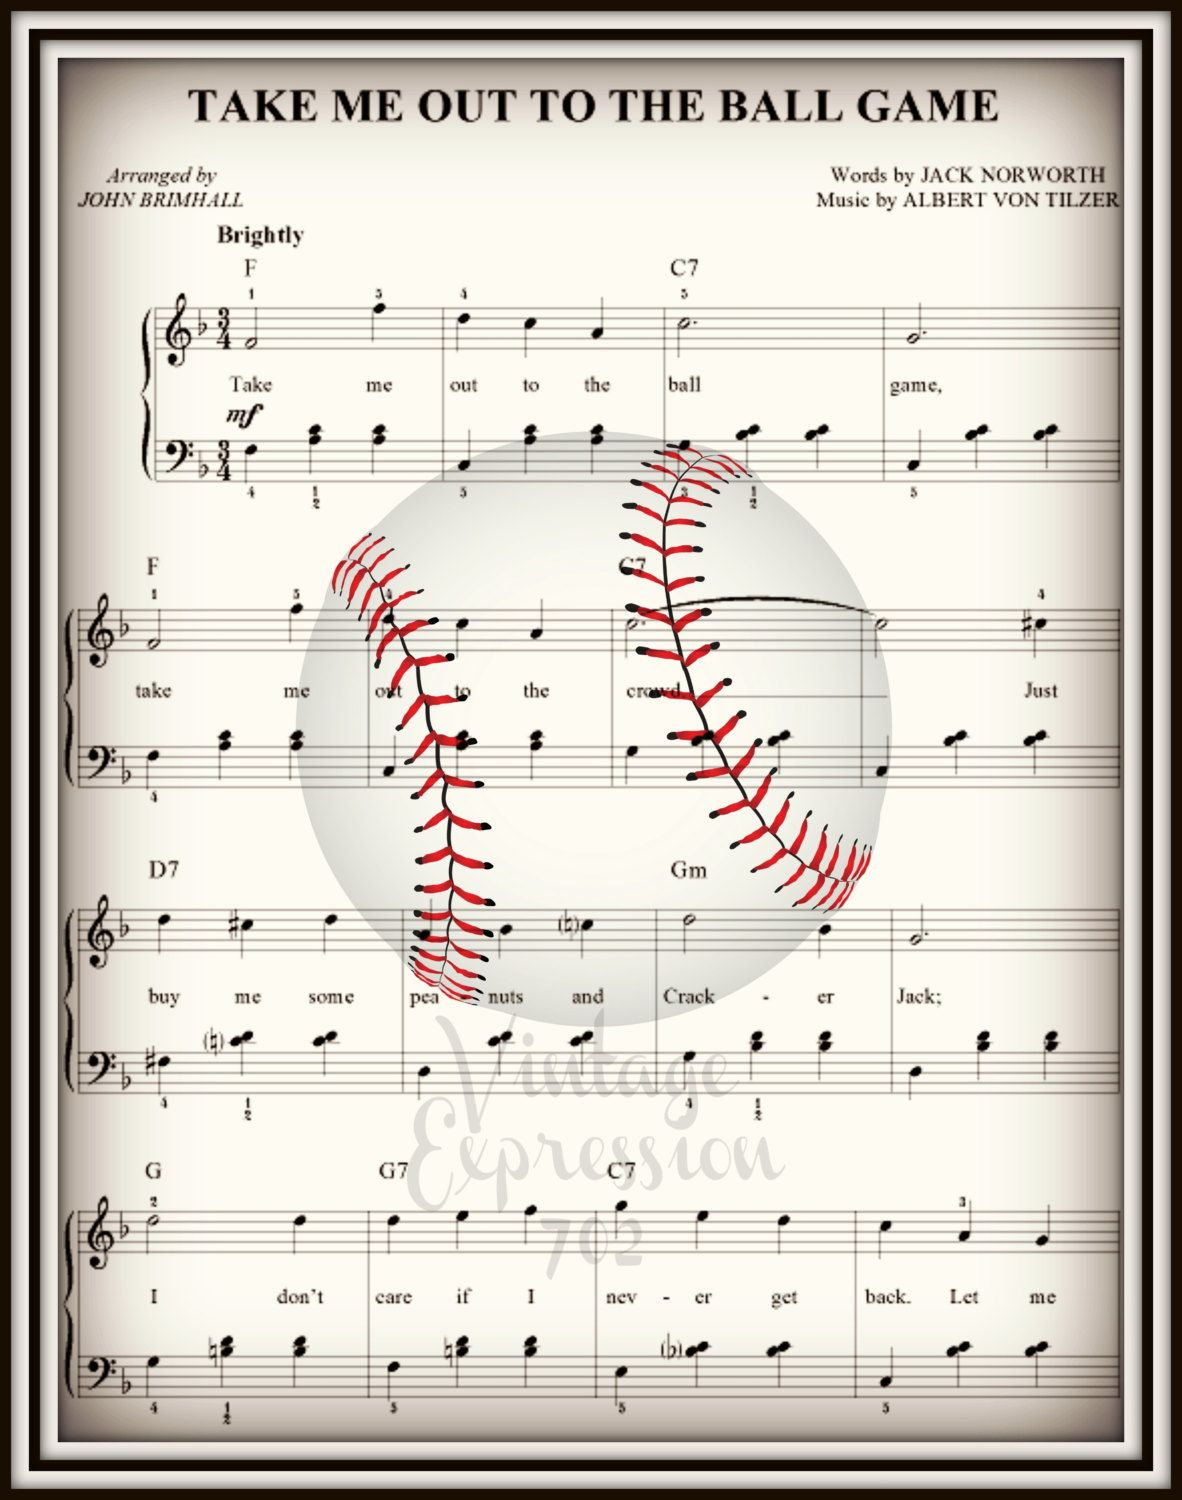 Park Art My WordPress Blog_Take Me Out To The Ball Game Piano Music